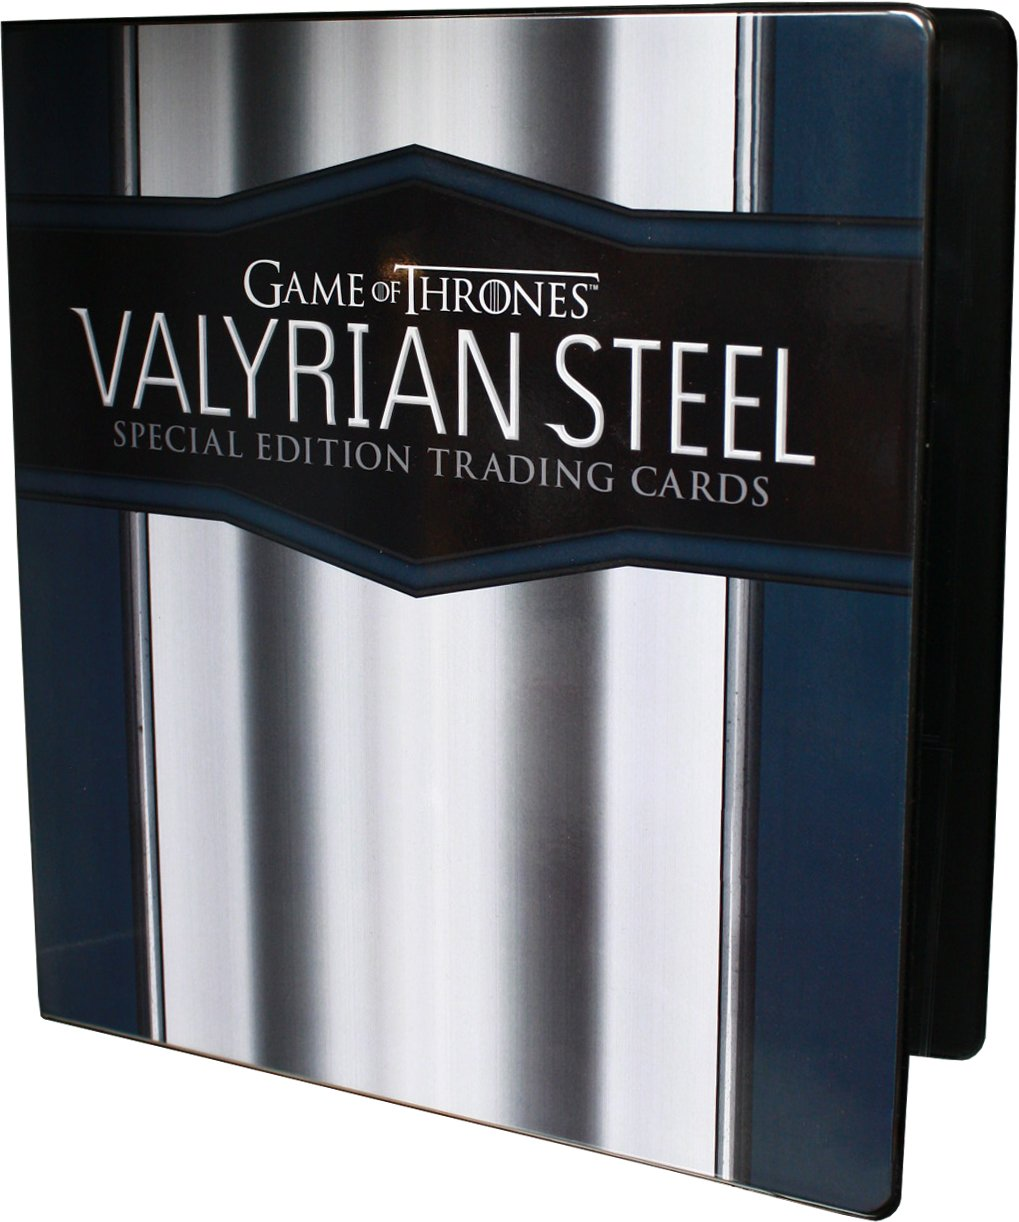 Game of Thrones Valyrian Steel Special Edition Trading Cards Binder Rittenhouse